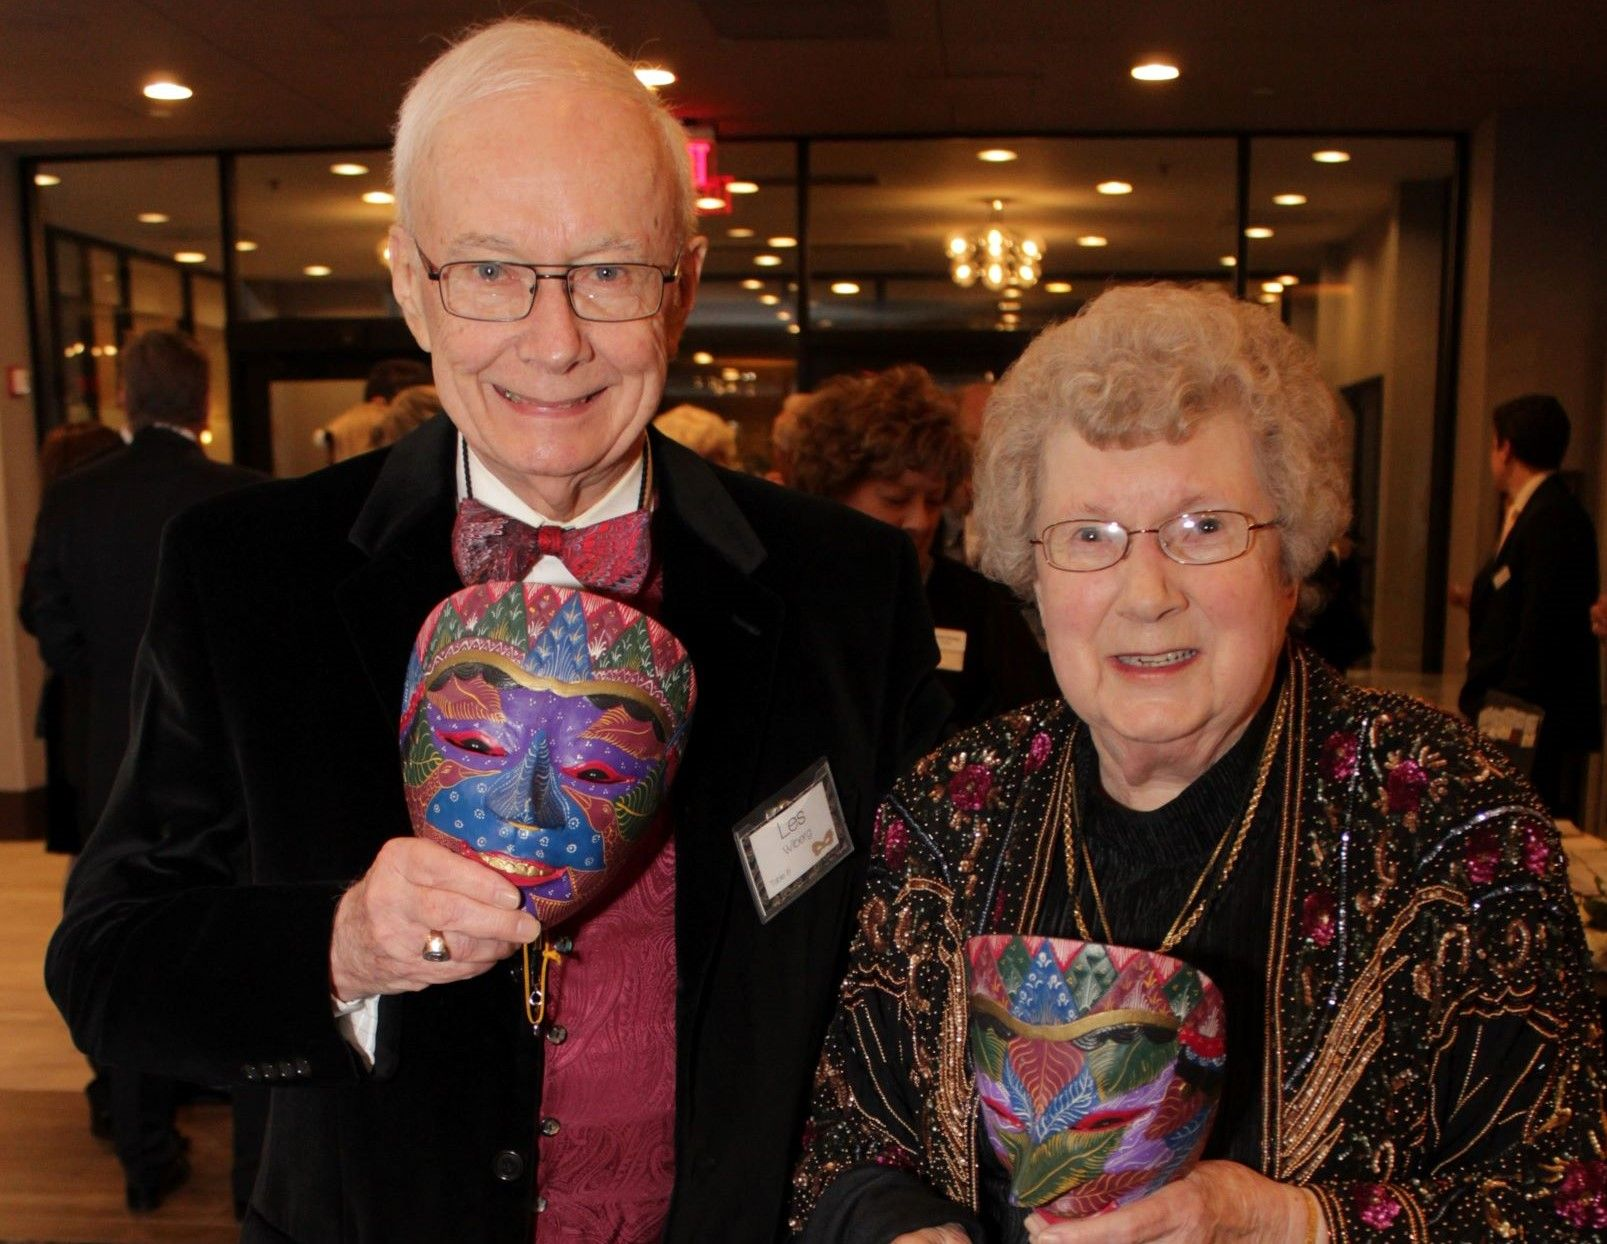 Wheaton Couple Encourages Support for Arts DuPage with $100,000 Matching Gift Challenge